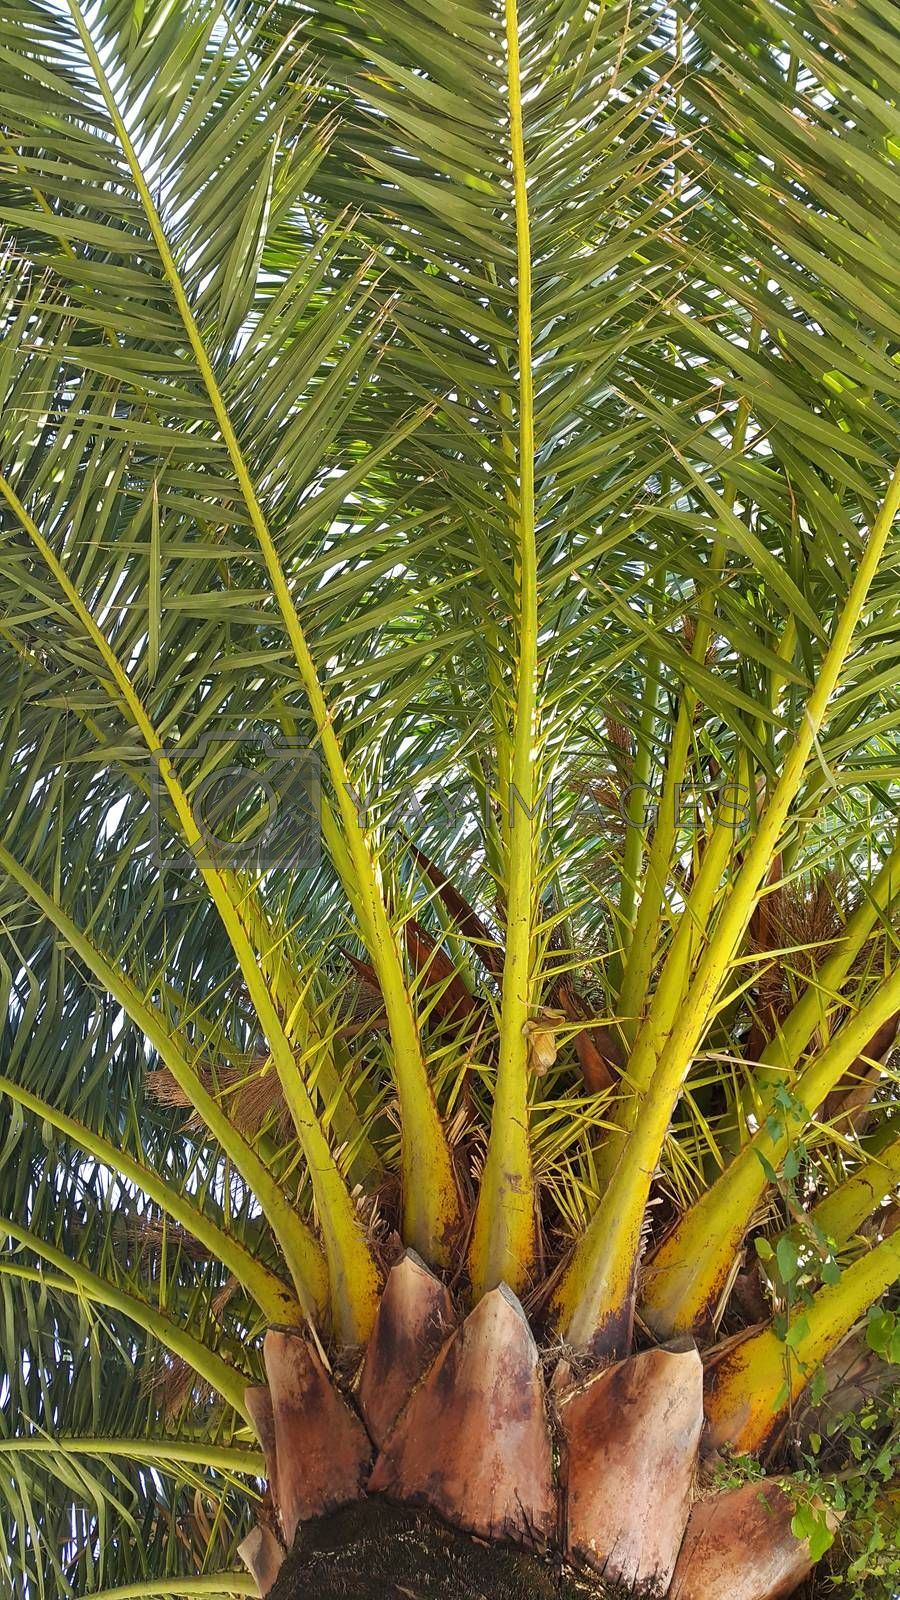 Branches of big tropical palm tree